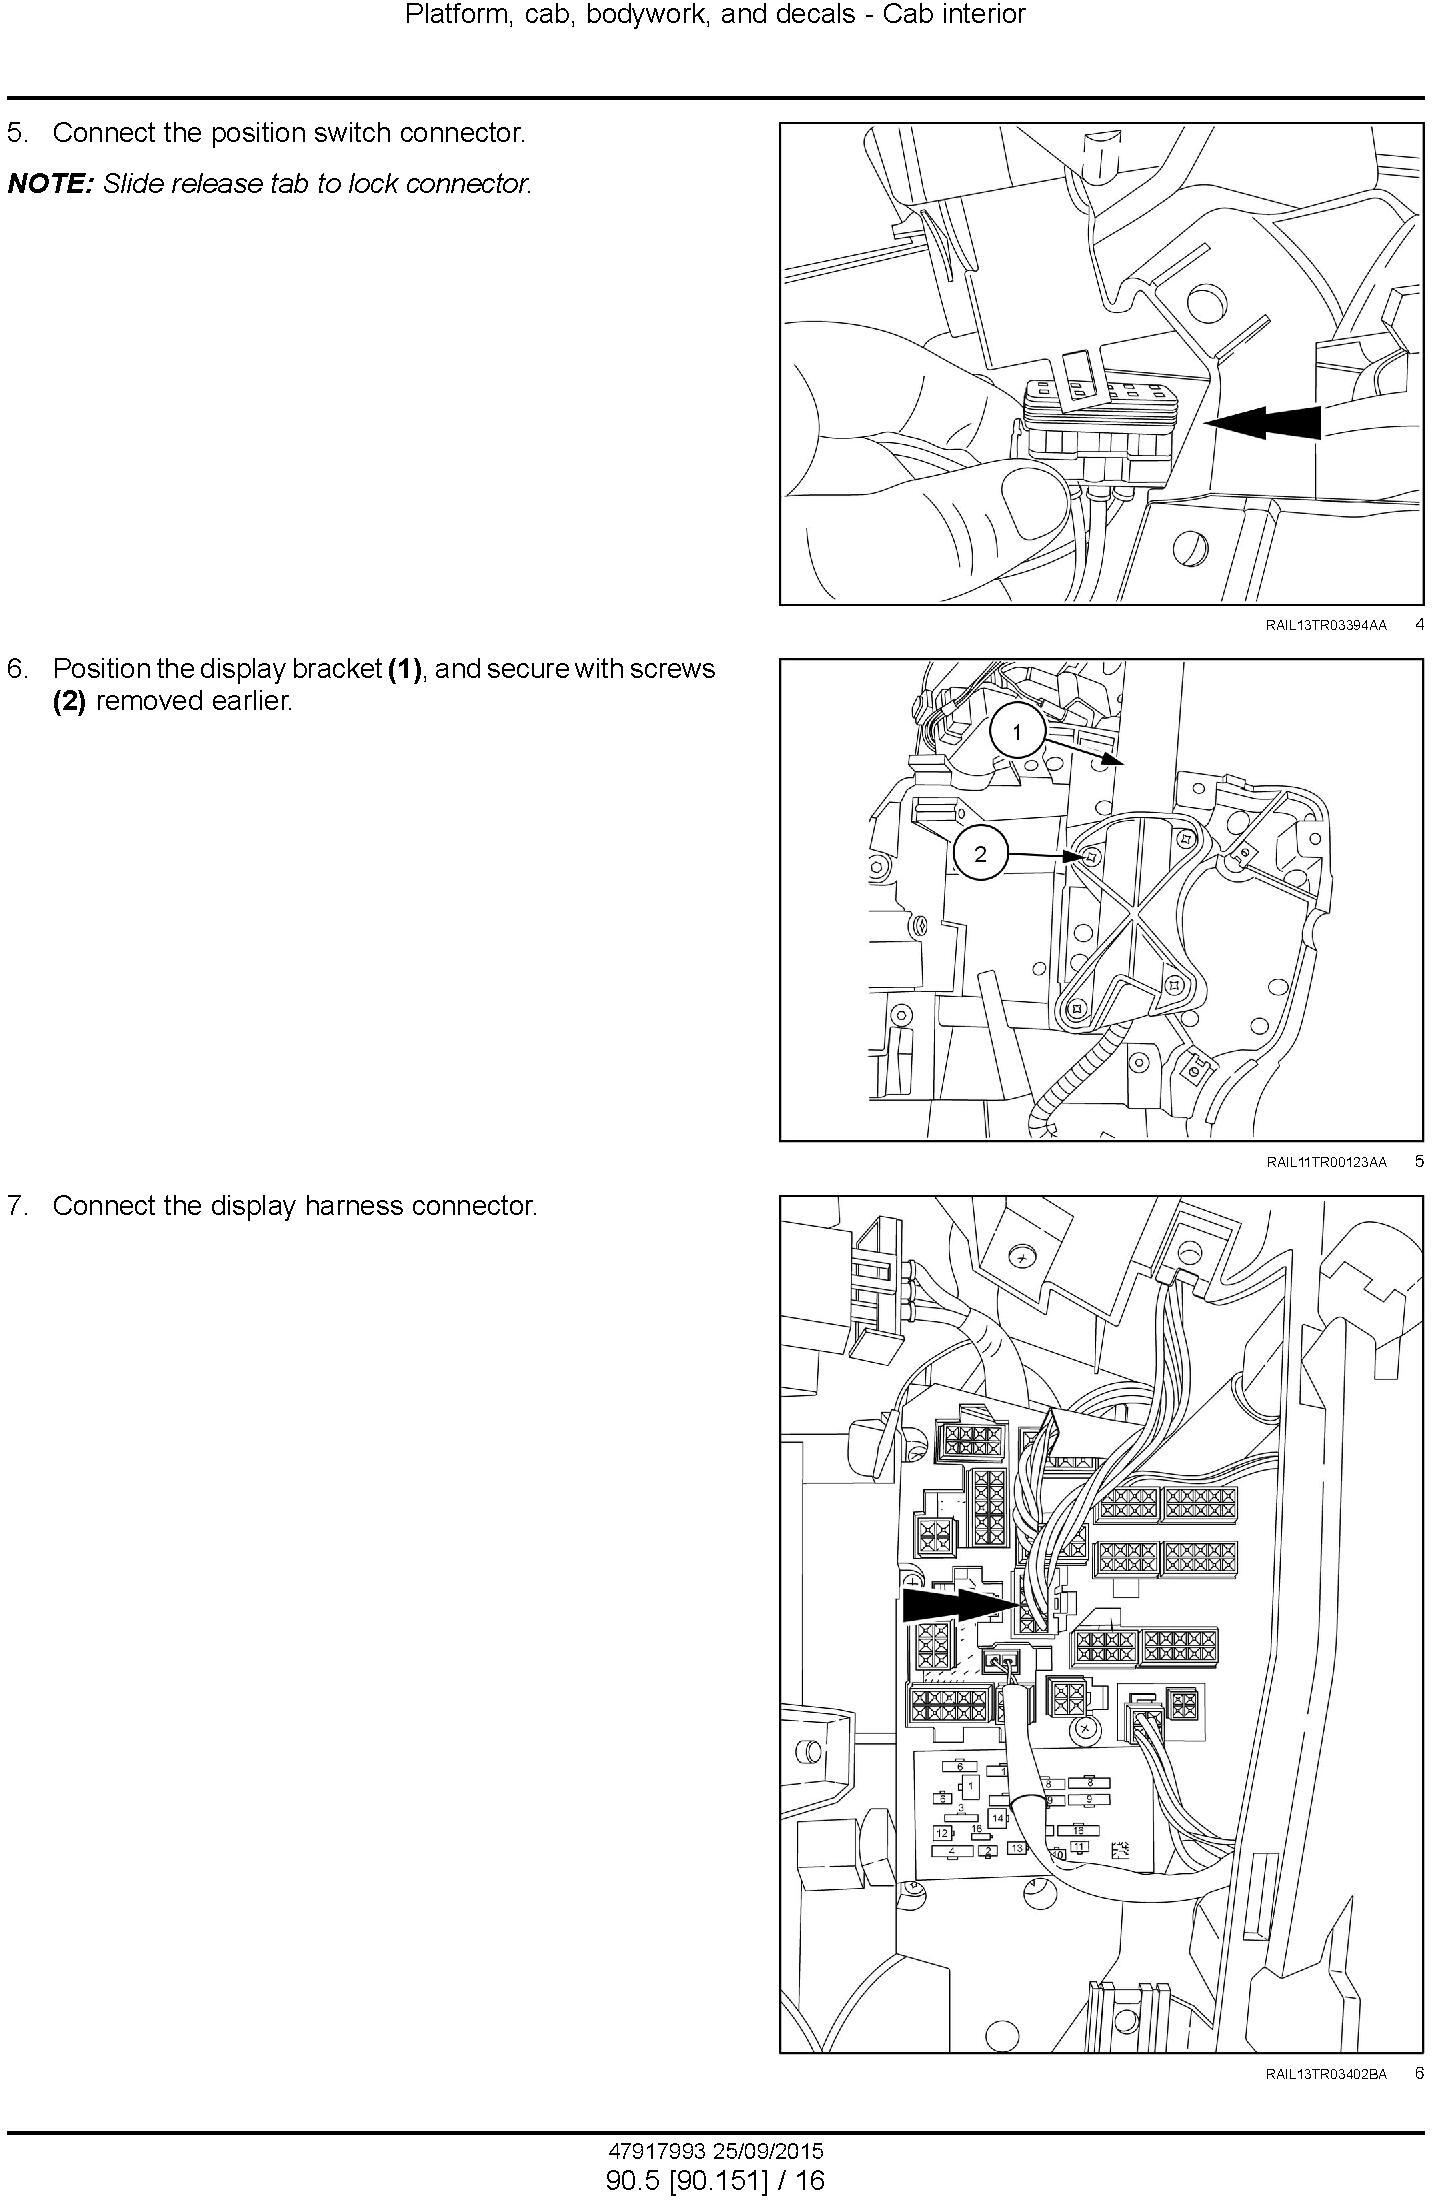 New Holland T8.320, T8.350, T8.380, T8.410 and SmartTrax PST Tier 4B Tractor Service Manual (Europe) - 1